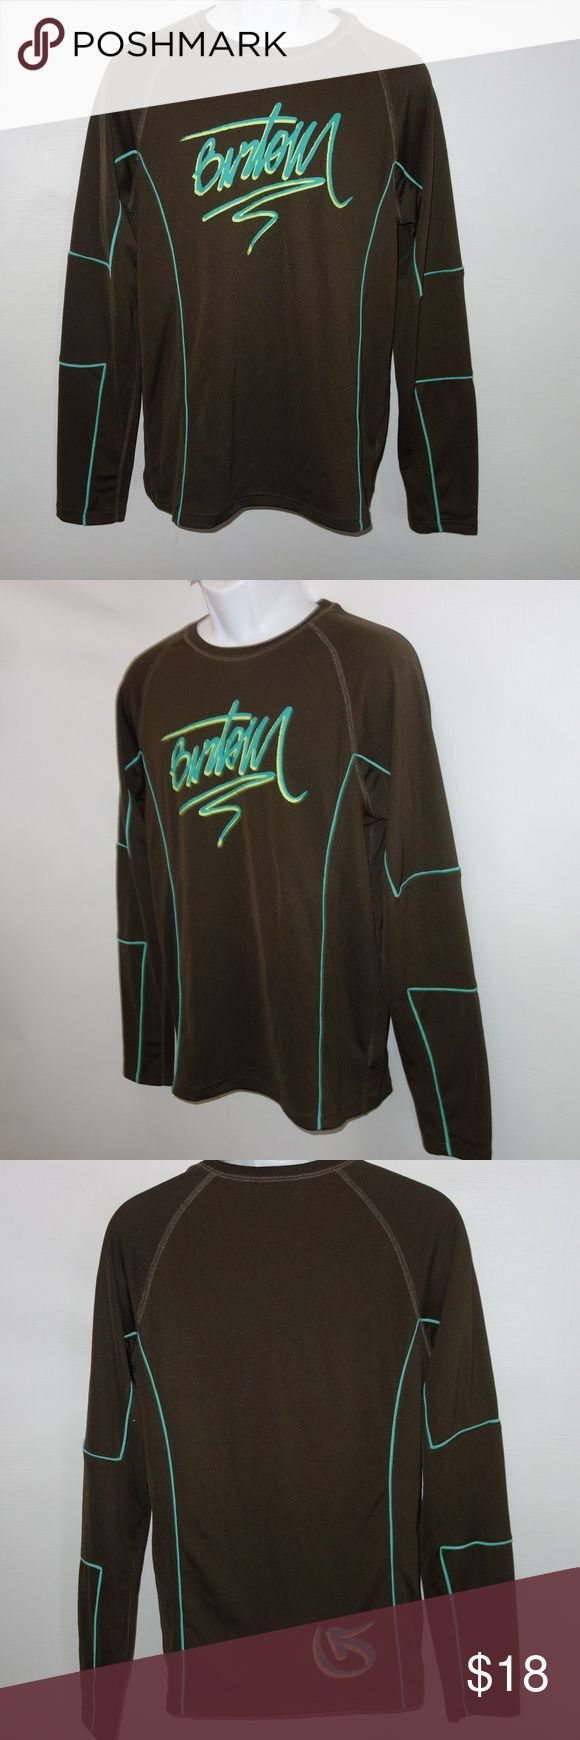 "Burton Men M Base layer Casual Shirt Brown Burton Men M Baselayer Casual Shirt Brown Long Sleeve Logo Snowboarding b61 Preowned in great condition No rips, tears or stains Looks like new Rich brown with bright green Logo on the chest Length from shoulder to hem is 28"" Chest from under arm to under arm is 22"" Great as a base layer or a shirt I have other items like this listed Thank you for looking! Burton Shirts"